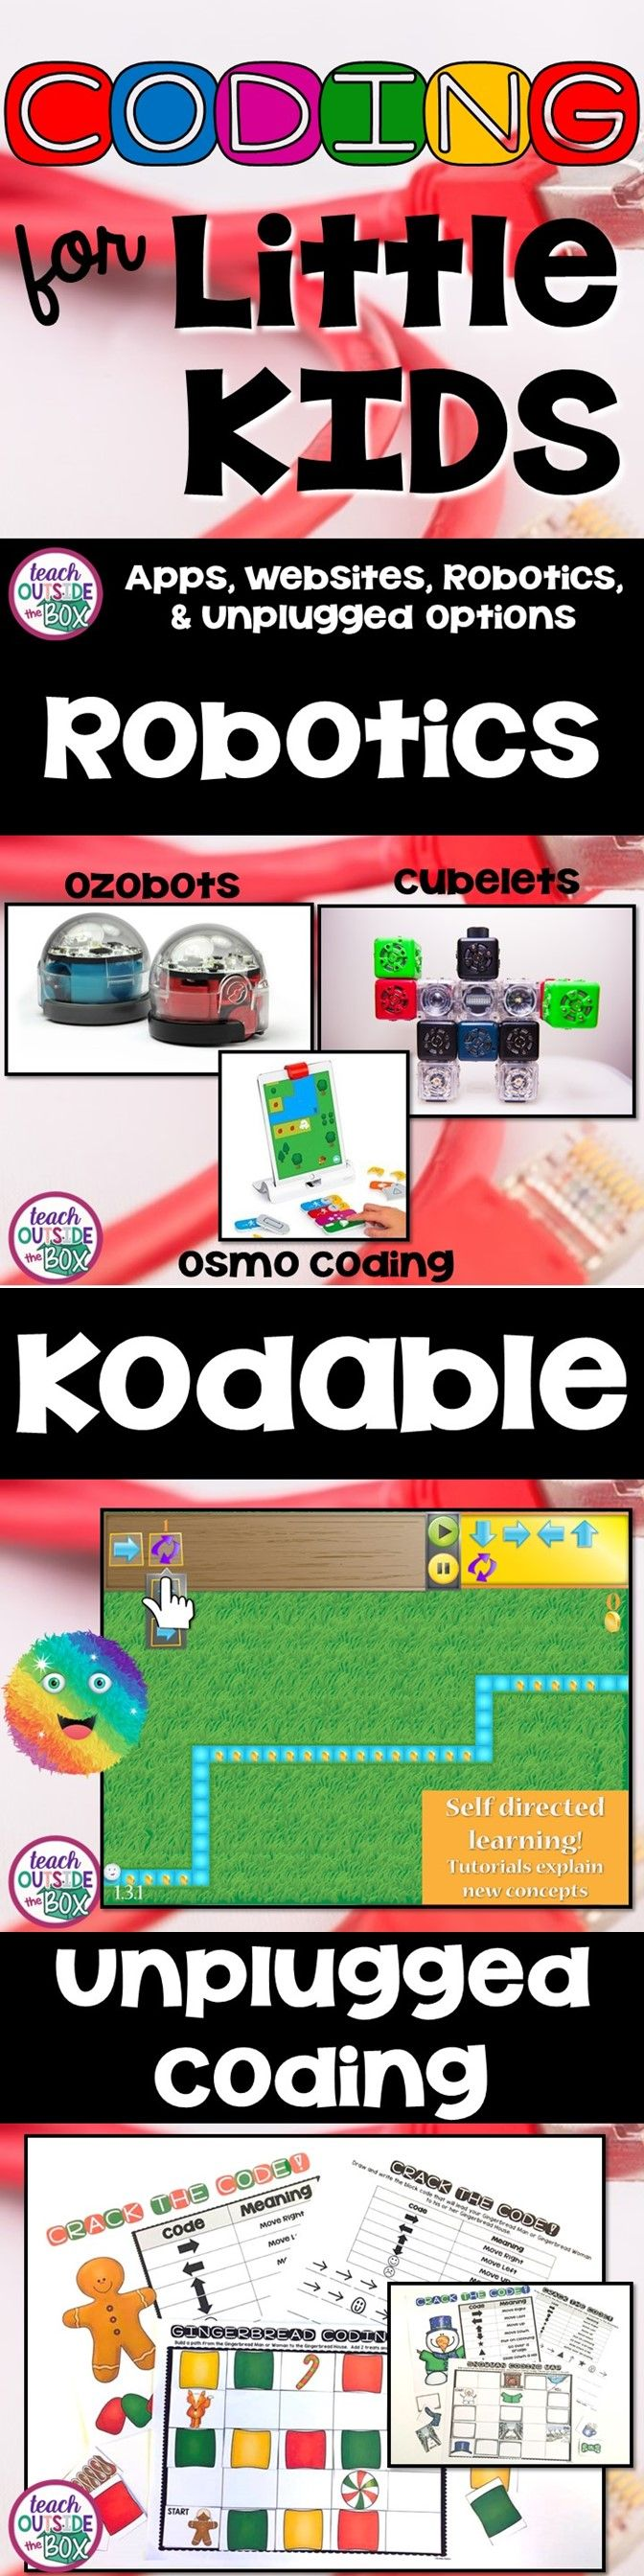 Apps, Websites, Robotics toys, and unplugged coding options for young children!   Hour of Code   Elementary Coding